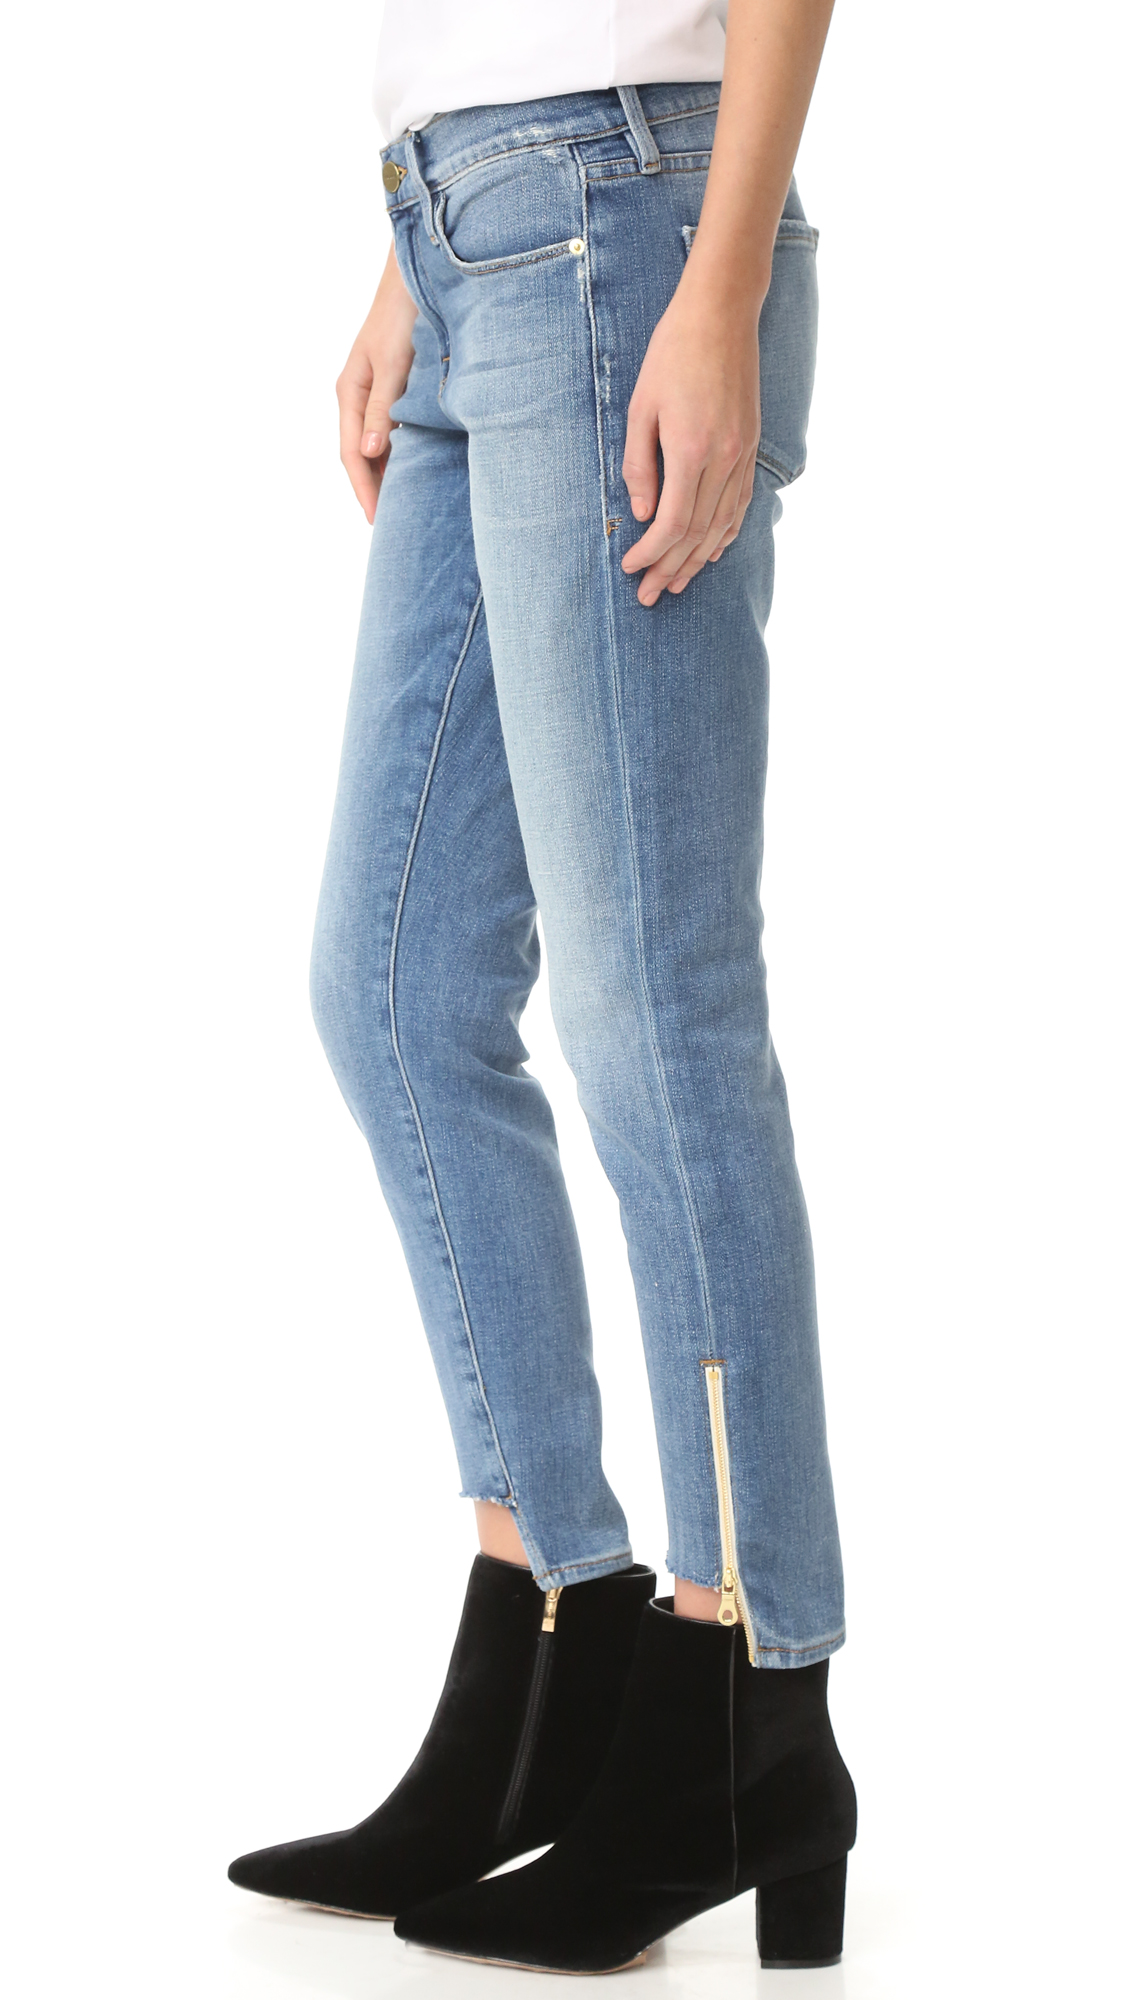 Slouchy, faded FRAME jeans with gold tone zippers at the cutaway cuffs. 5 pocket styling. Button closure and zip fly. Fabric: Soft stretch denim. 94% cotton/5% polyester/1% spandex. Wash cold. Made in the USA. Measurements Rise: 9.5in / 24cm